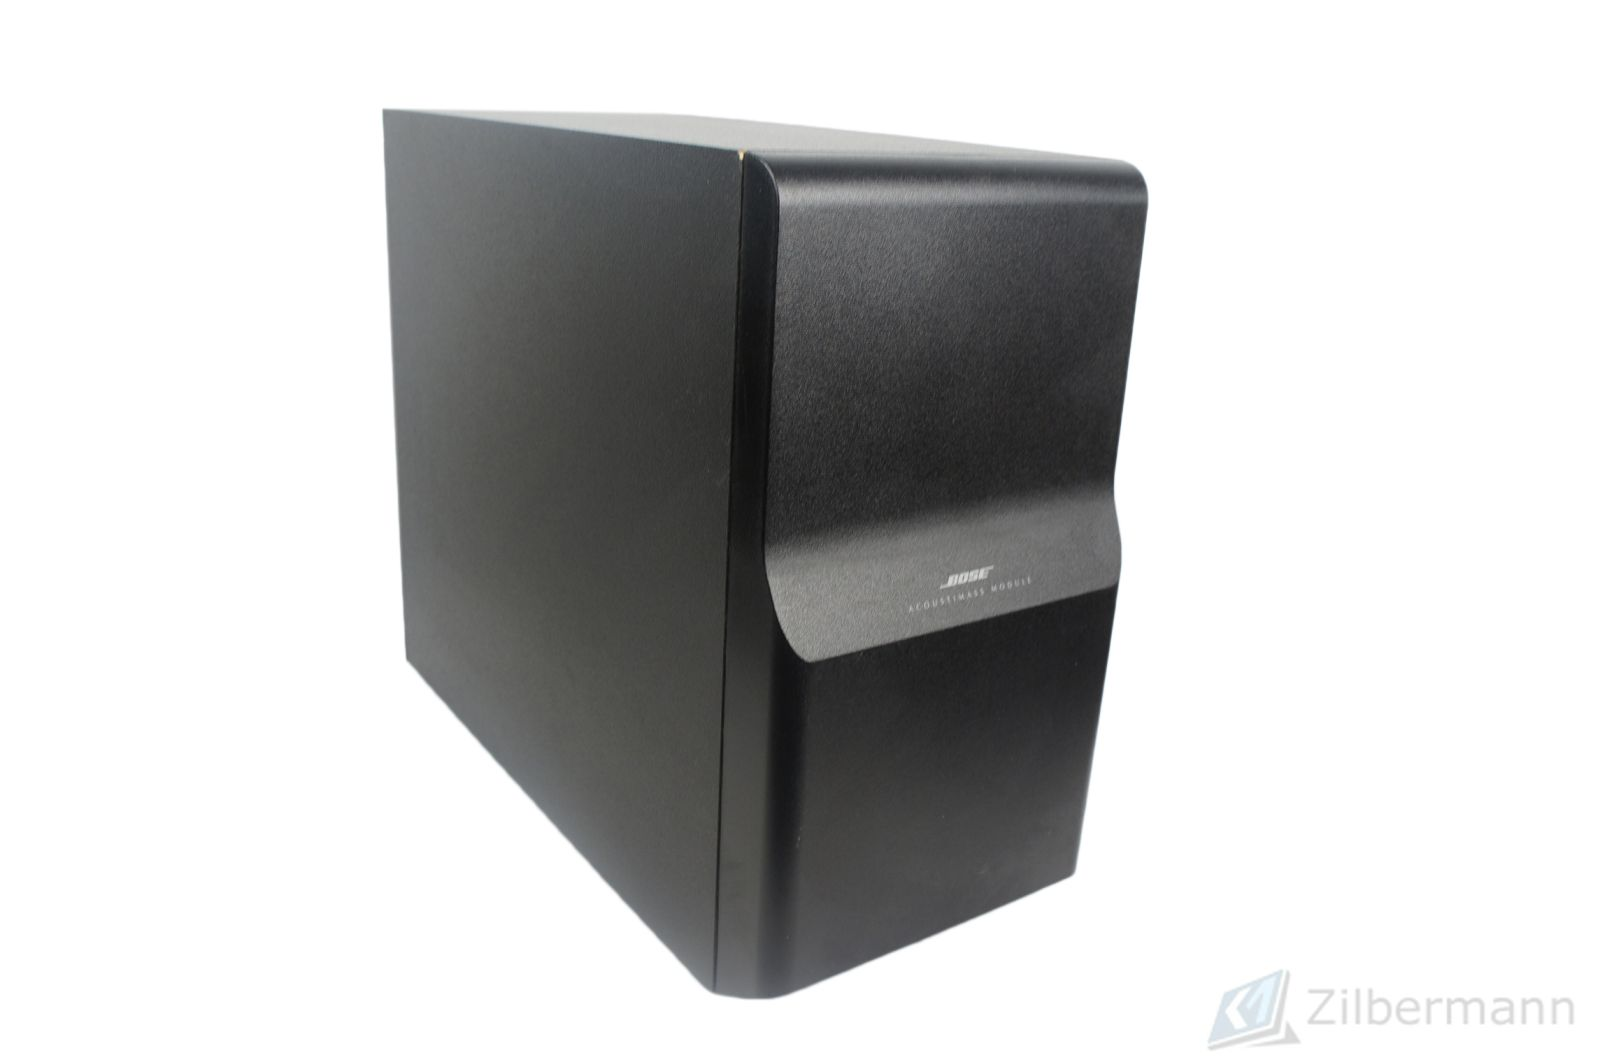 Bose_Acoustimass_6_Series_II_Heimkino-System_Subwoofer_05